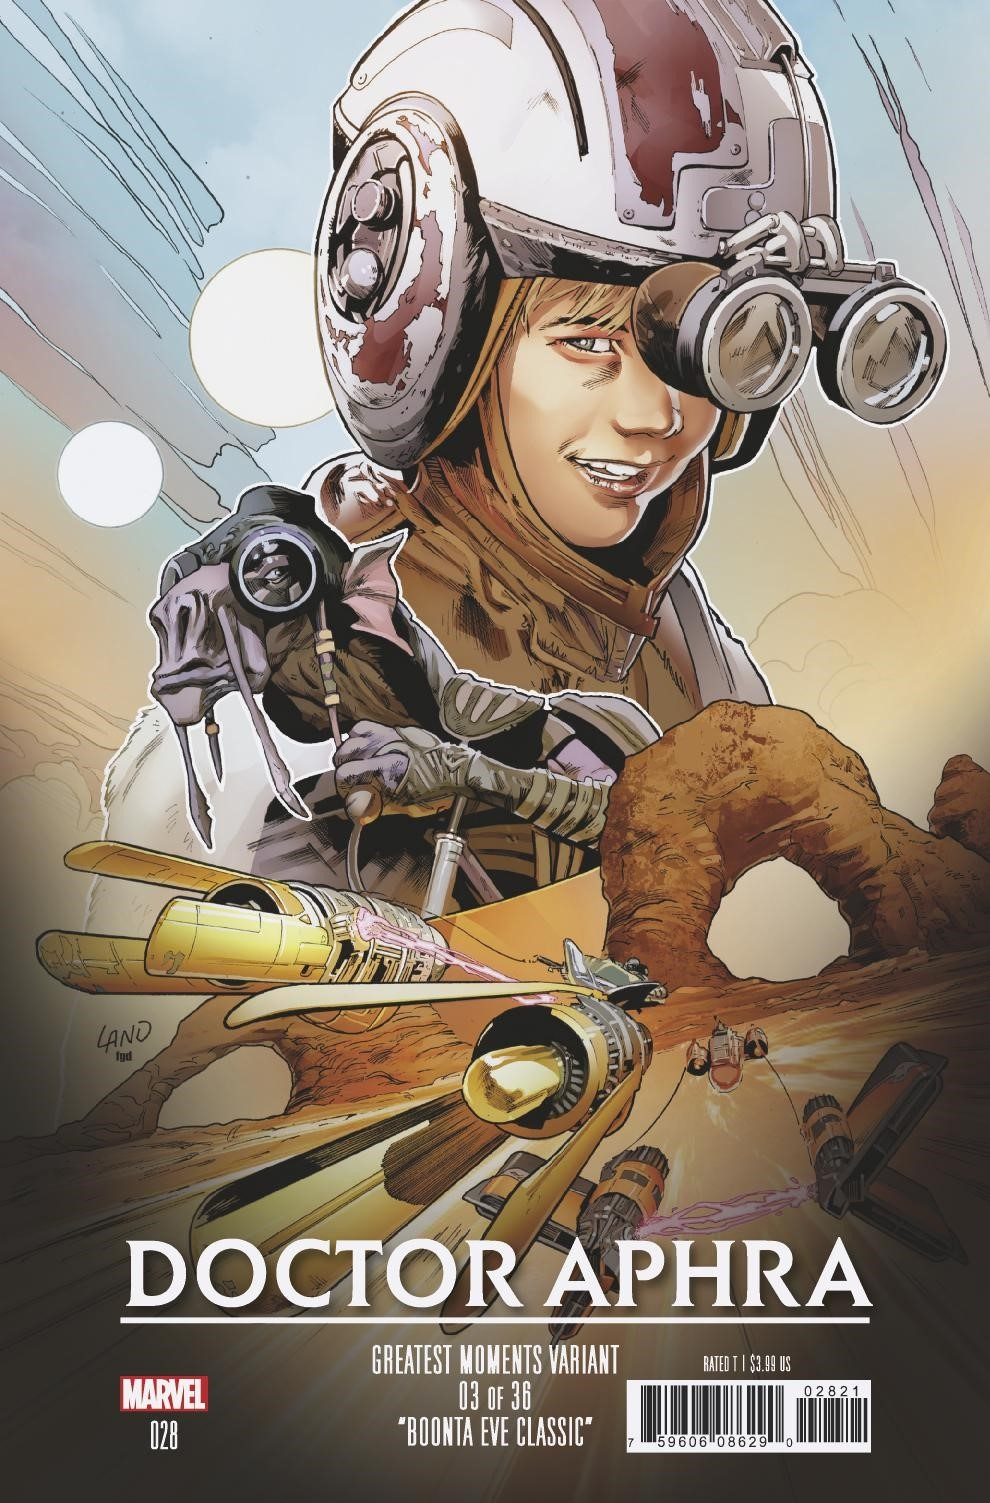 Doctor Aphra #28 (Greg Land Greatest Moments Variant Cover 3 of 36) (30.01.2019)